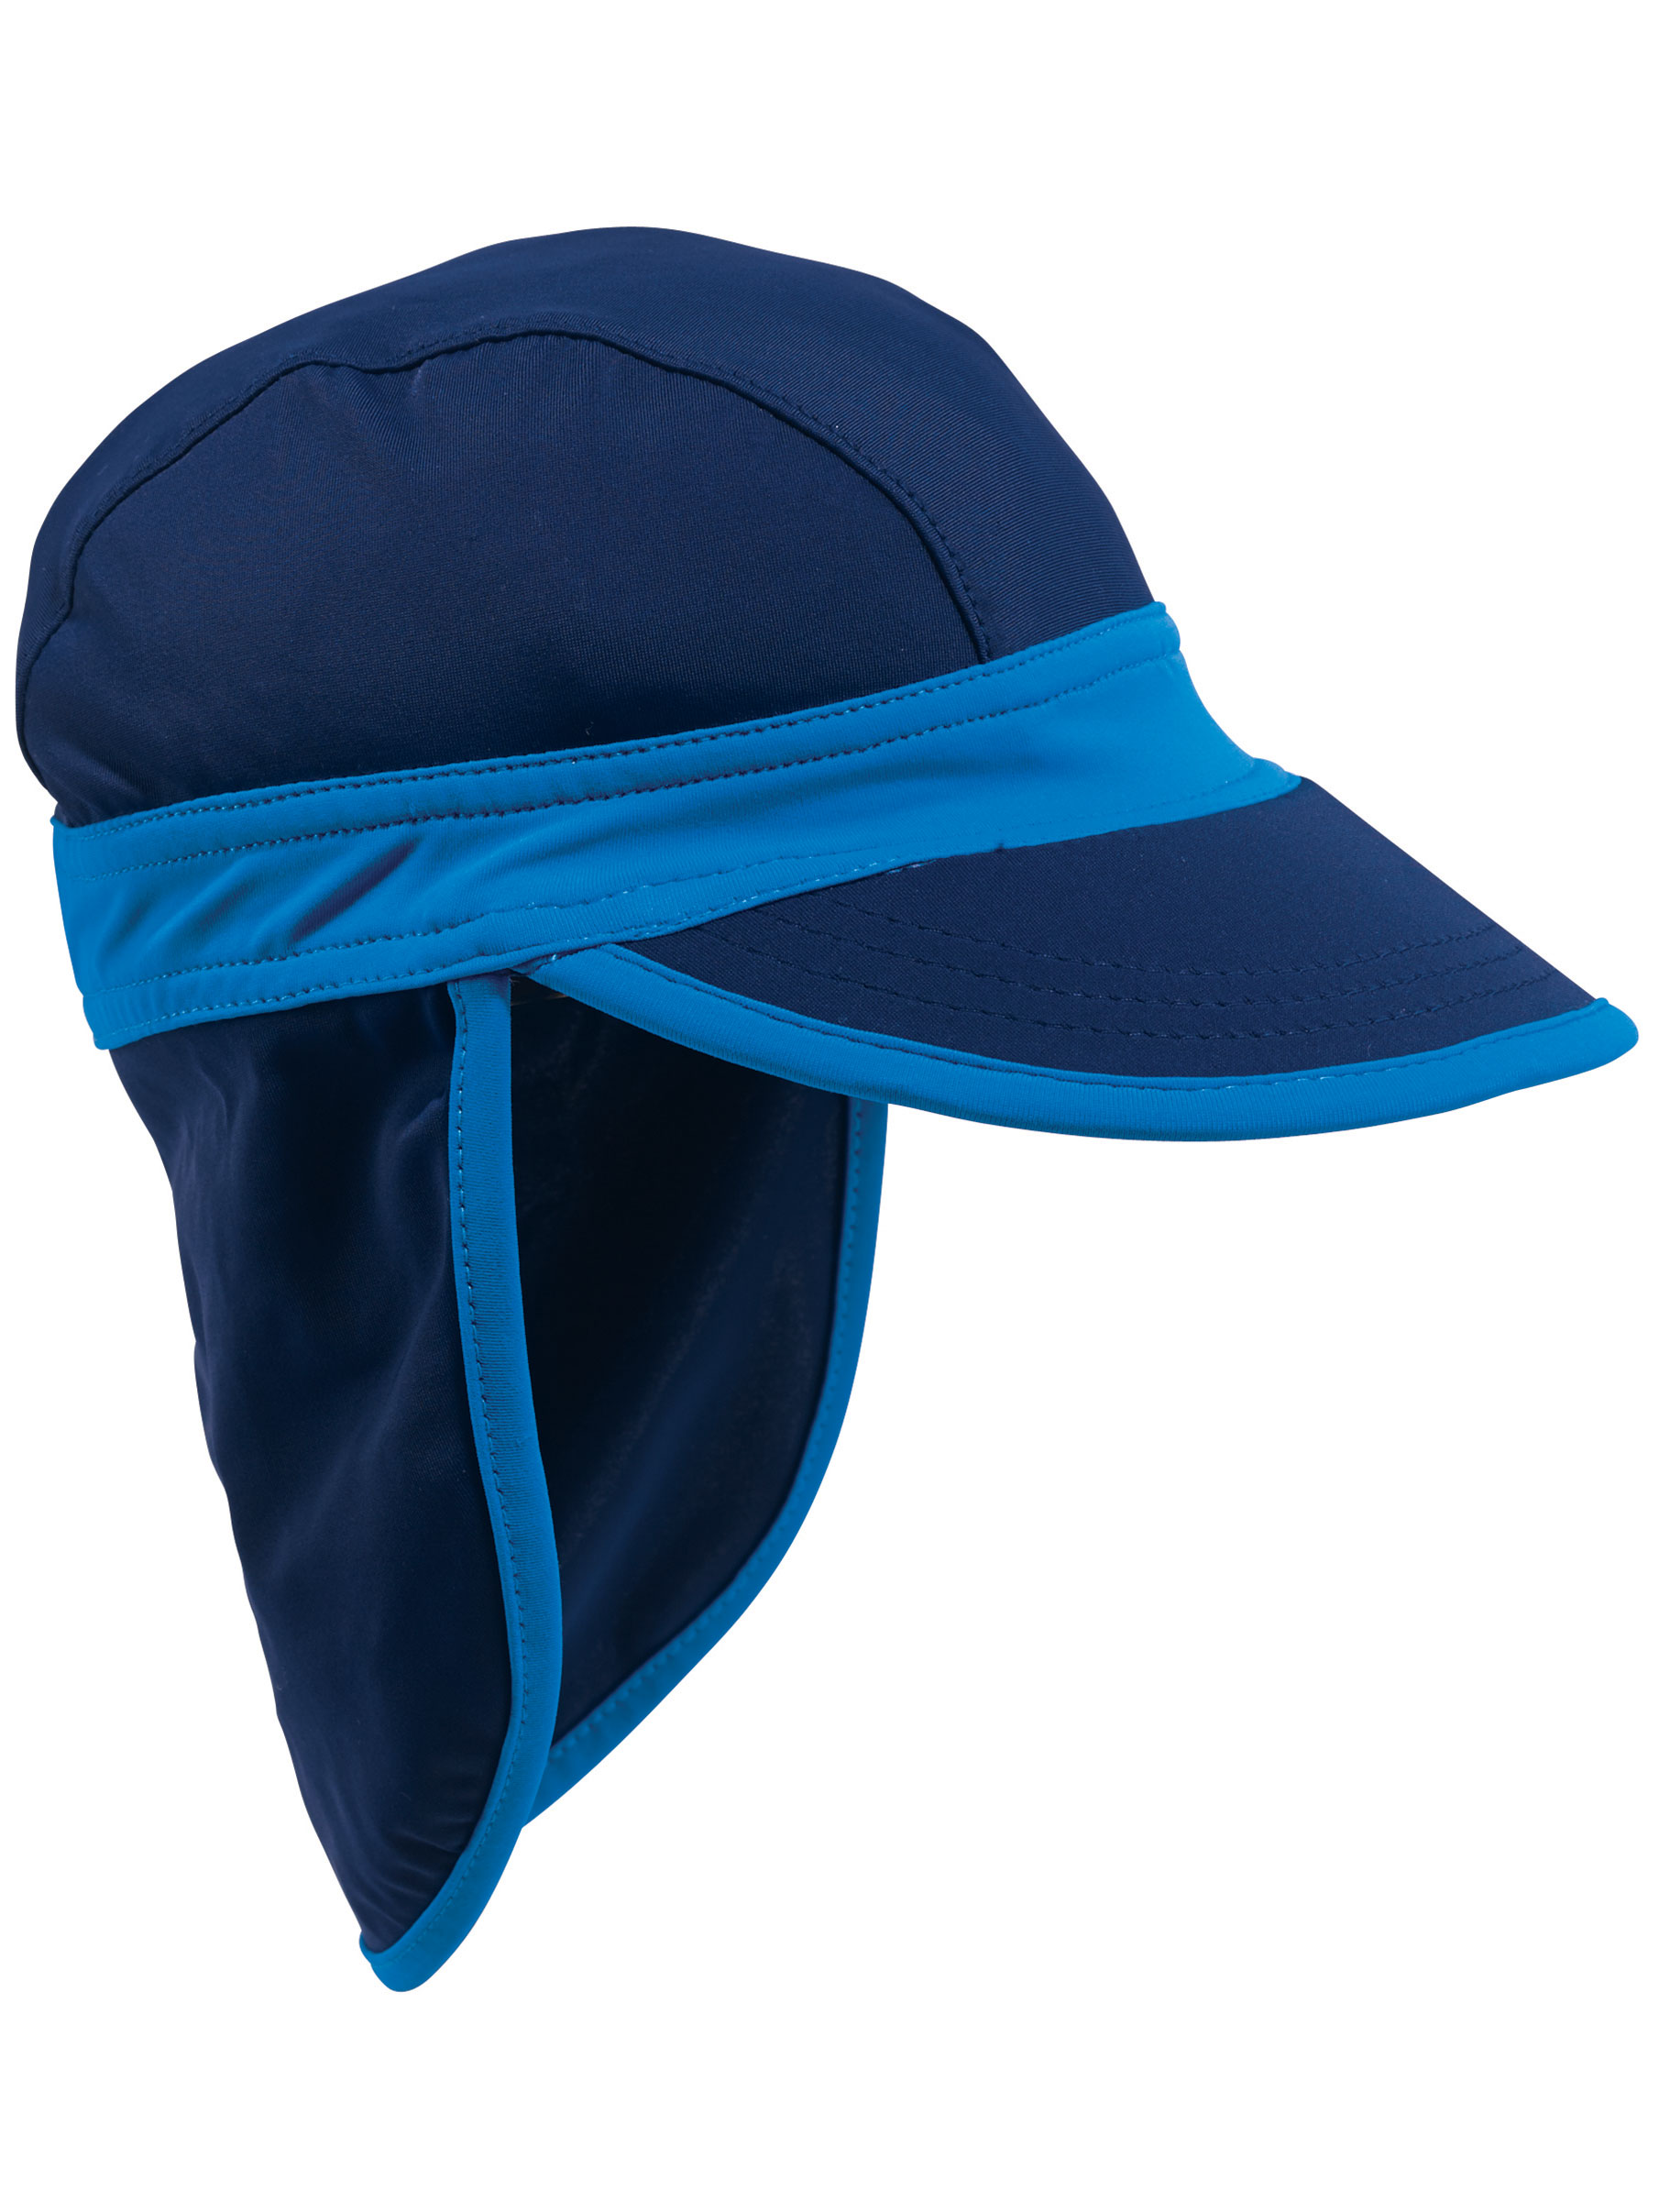 dbd65019f16 Sun Smarties - Sun Smarties Navy Blue Baby Sun Hat - With Flap Shield for  Neck and Ears - Small